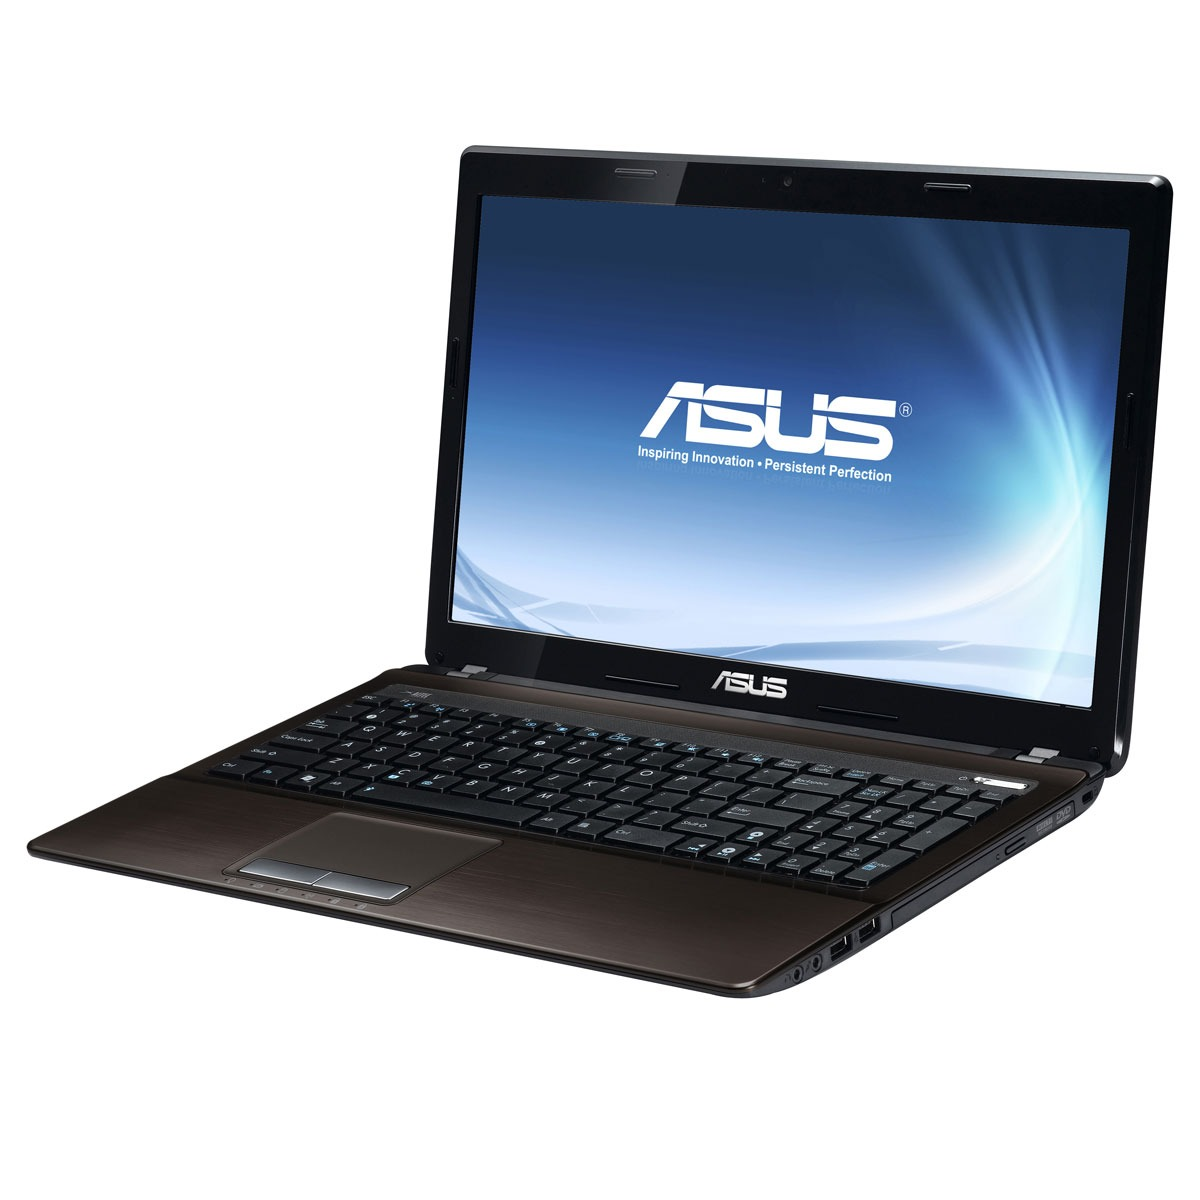 Asus X53s Laptop Drivers Download